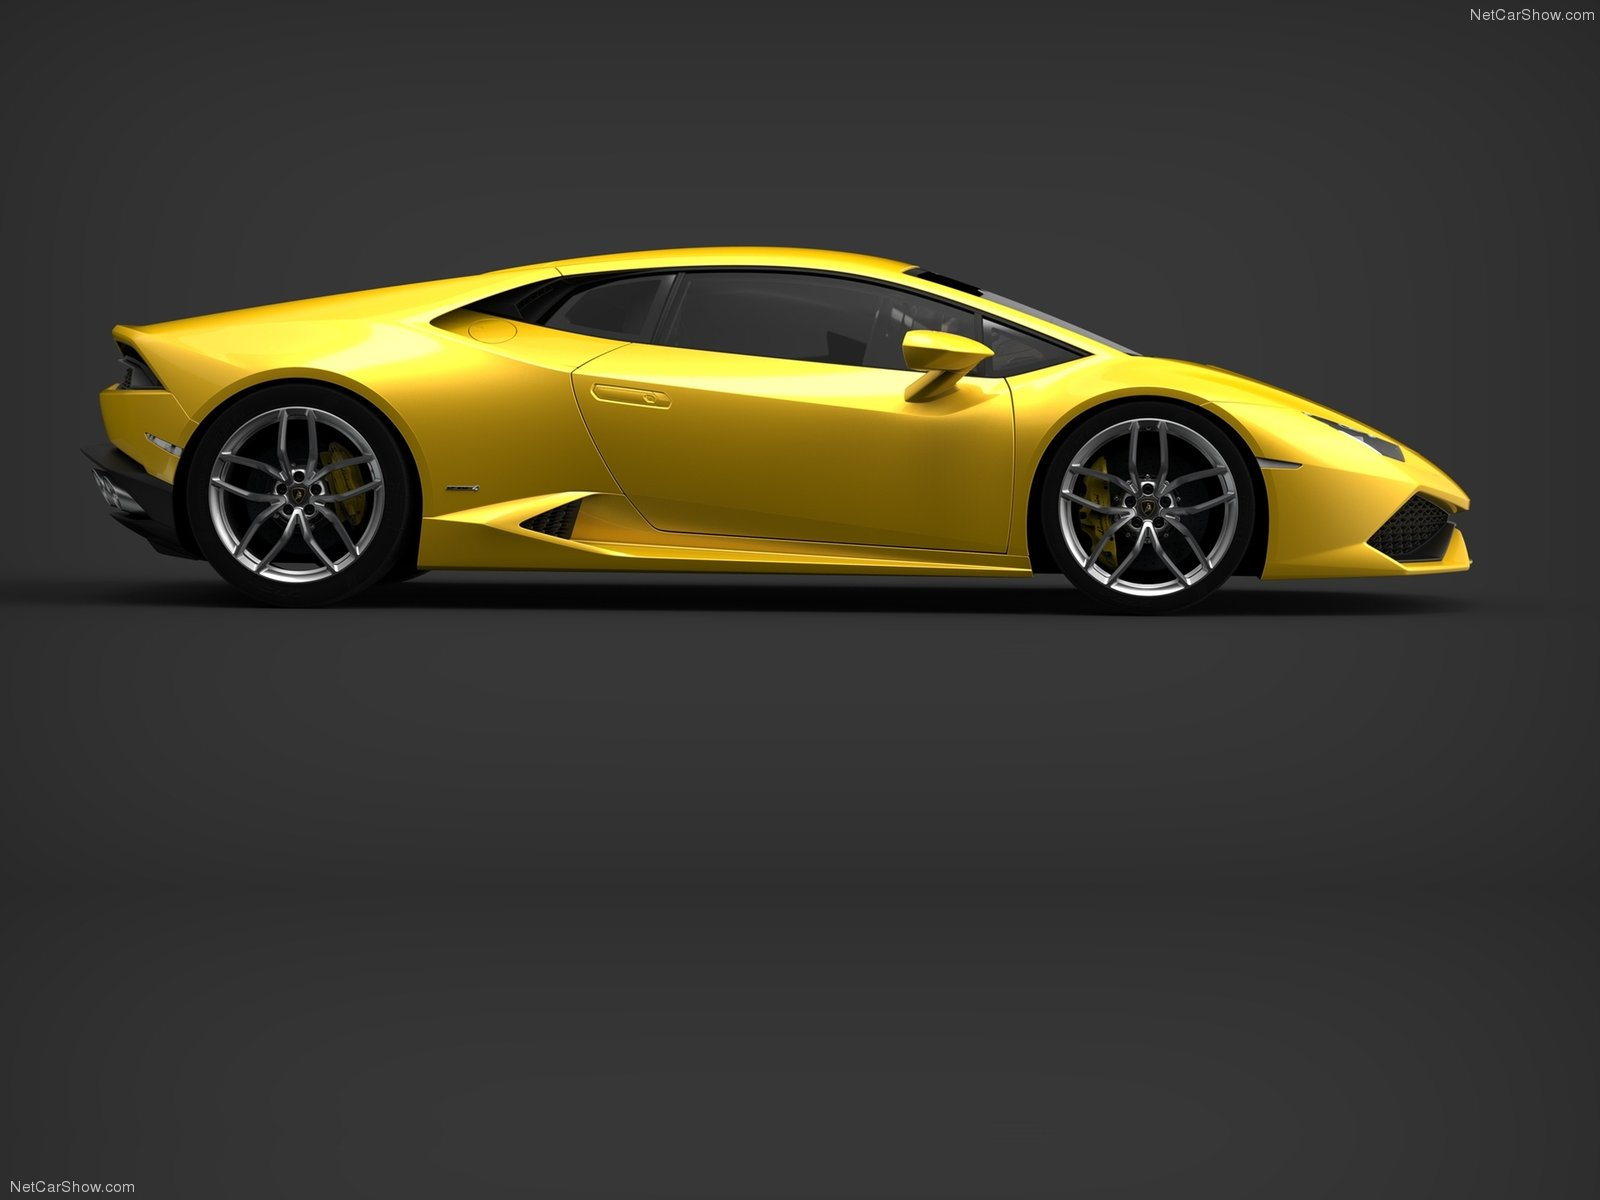 Обои wheels, Lamborghini, supercar, yellow, lp610-4. Автомобили foto 17